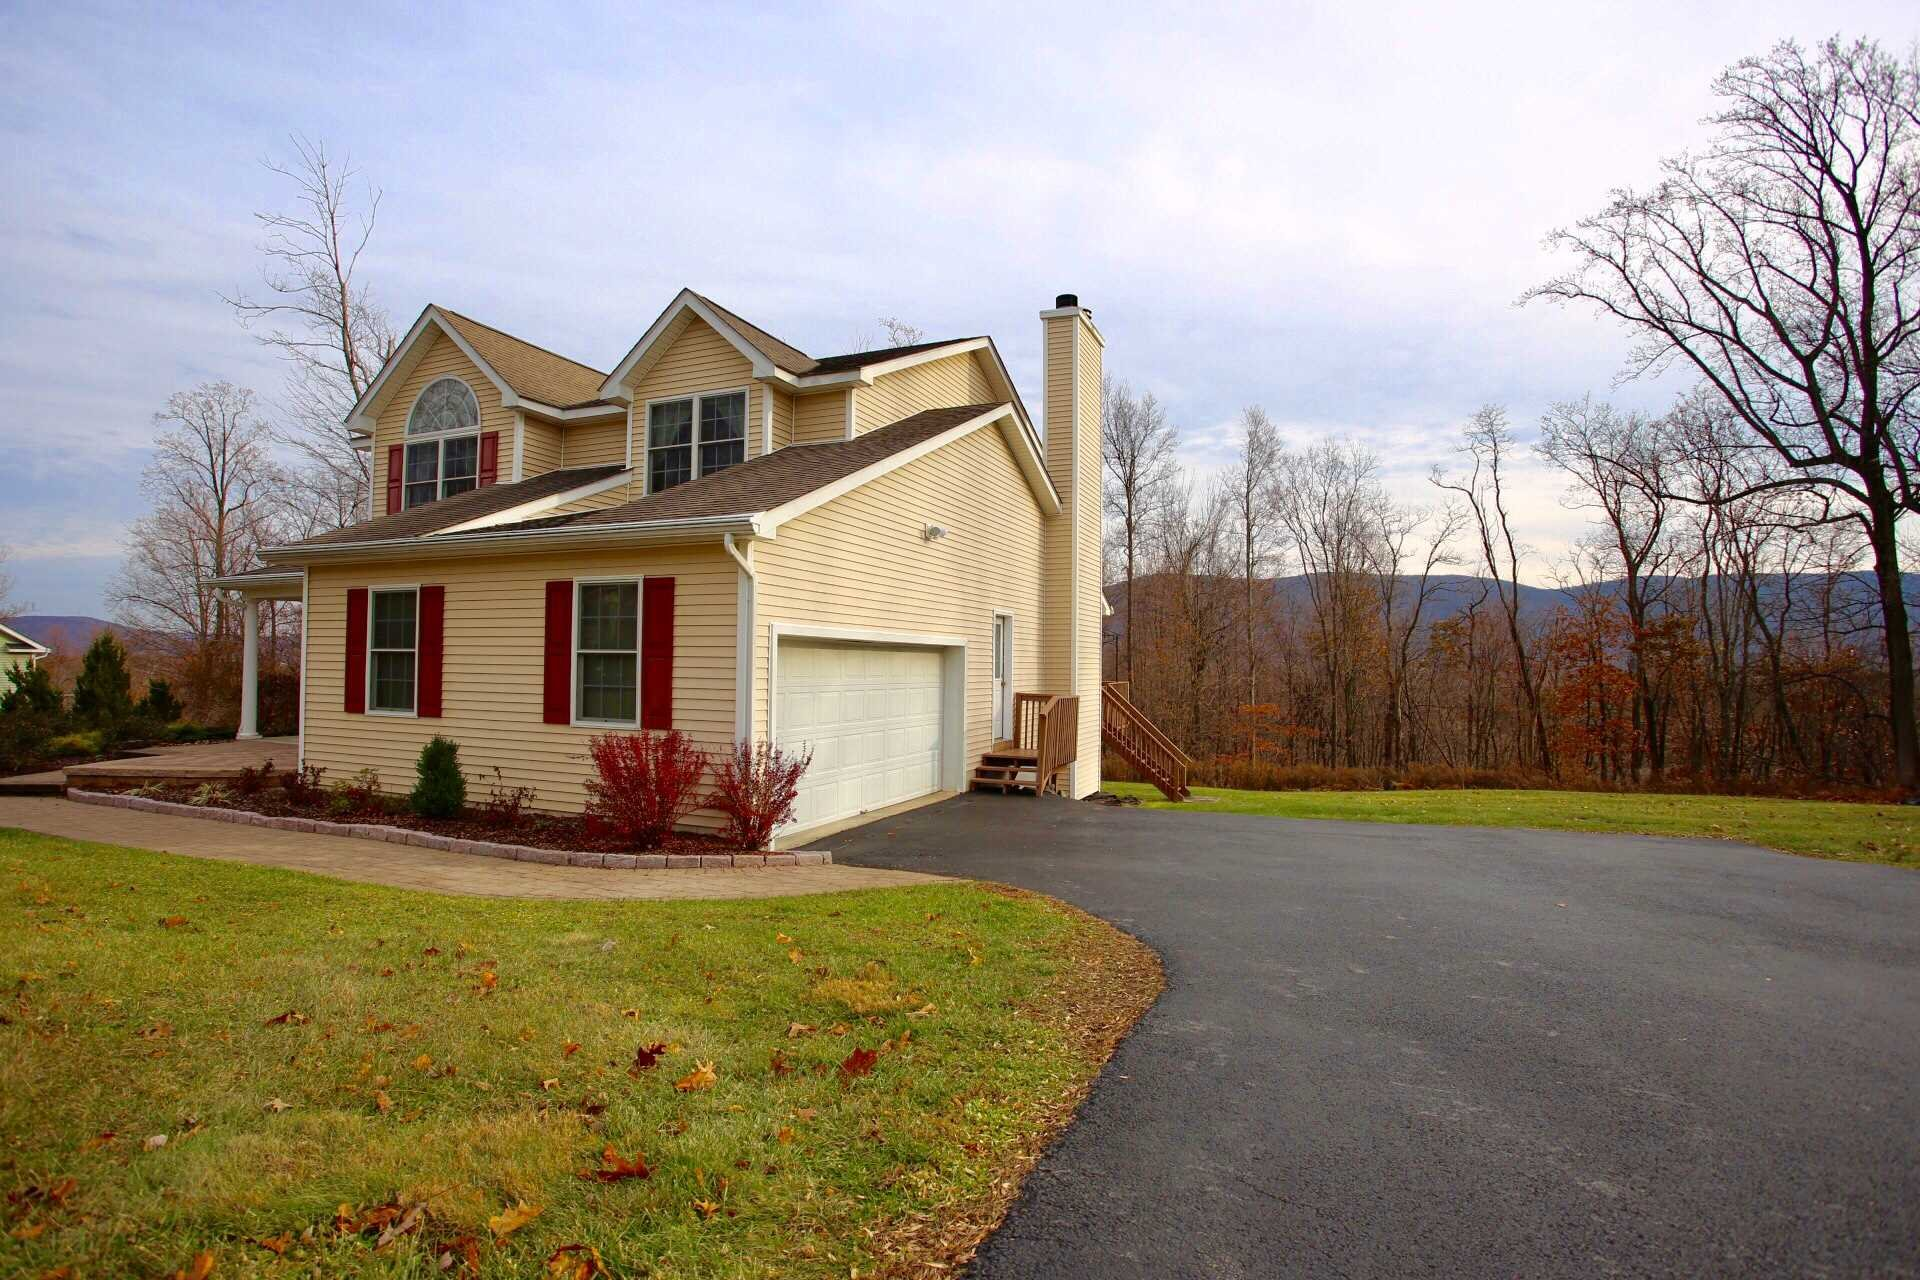 Additional photo for property listing at 14 TREE LINE Court 14 TREE LINE Court Fishkill, New York 12524 United States